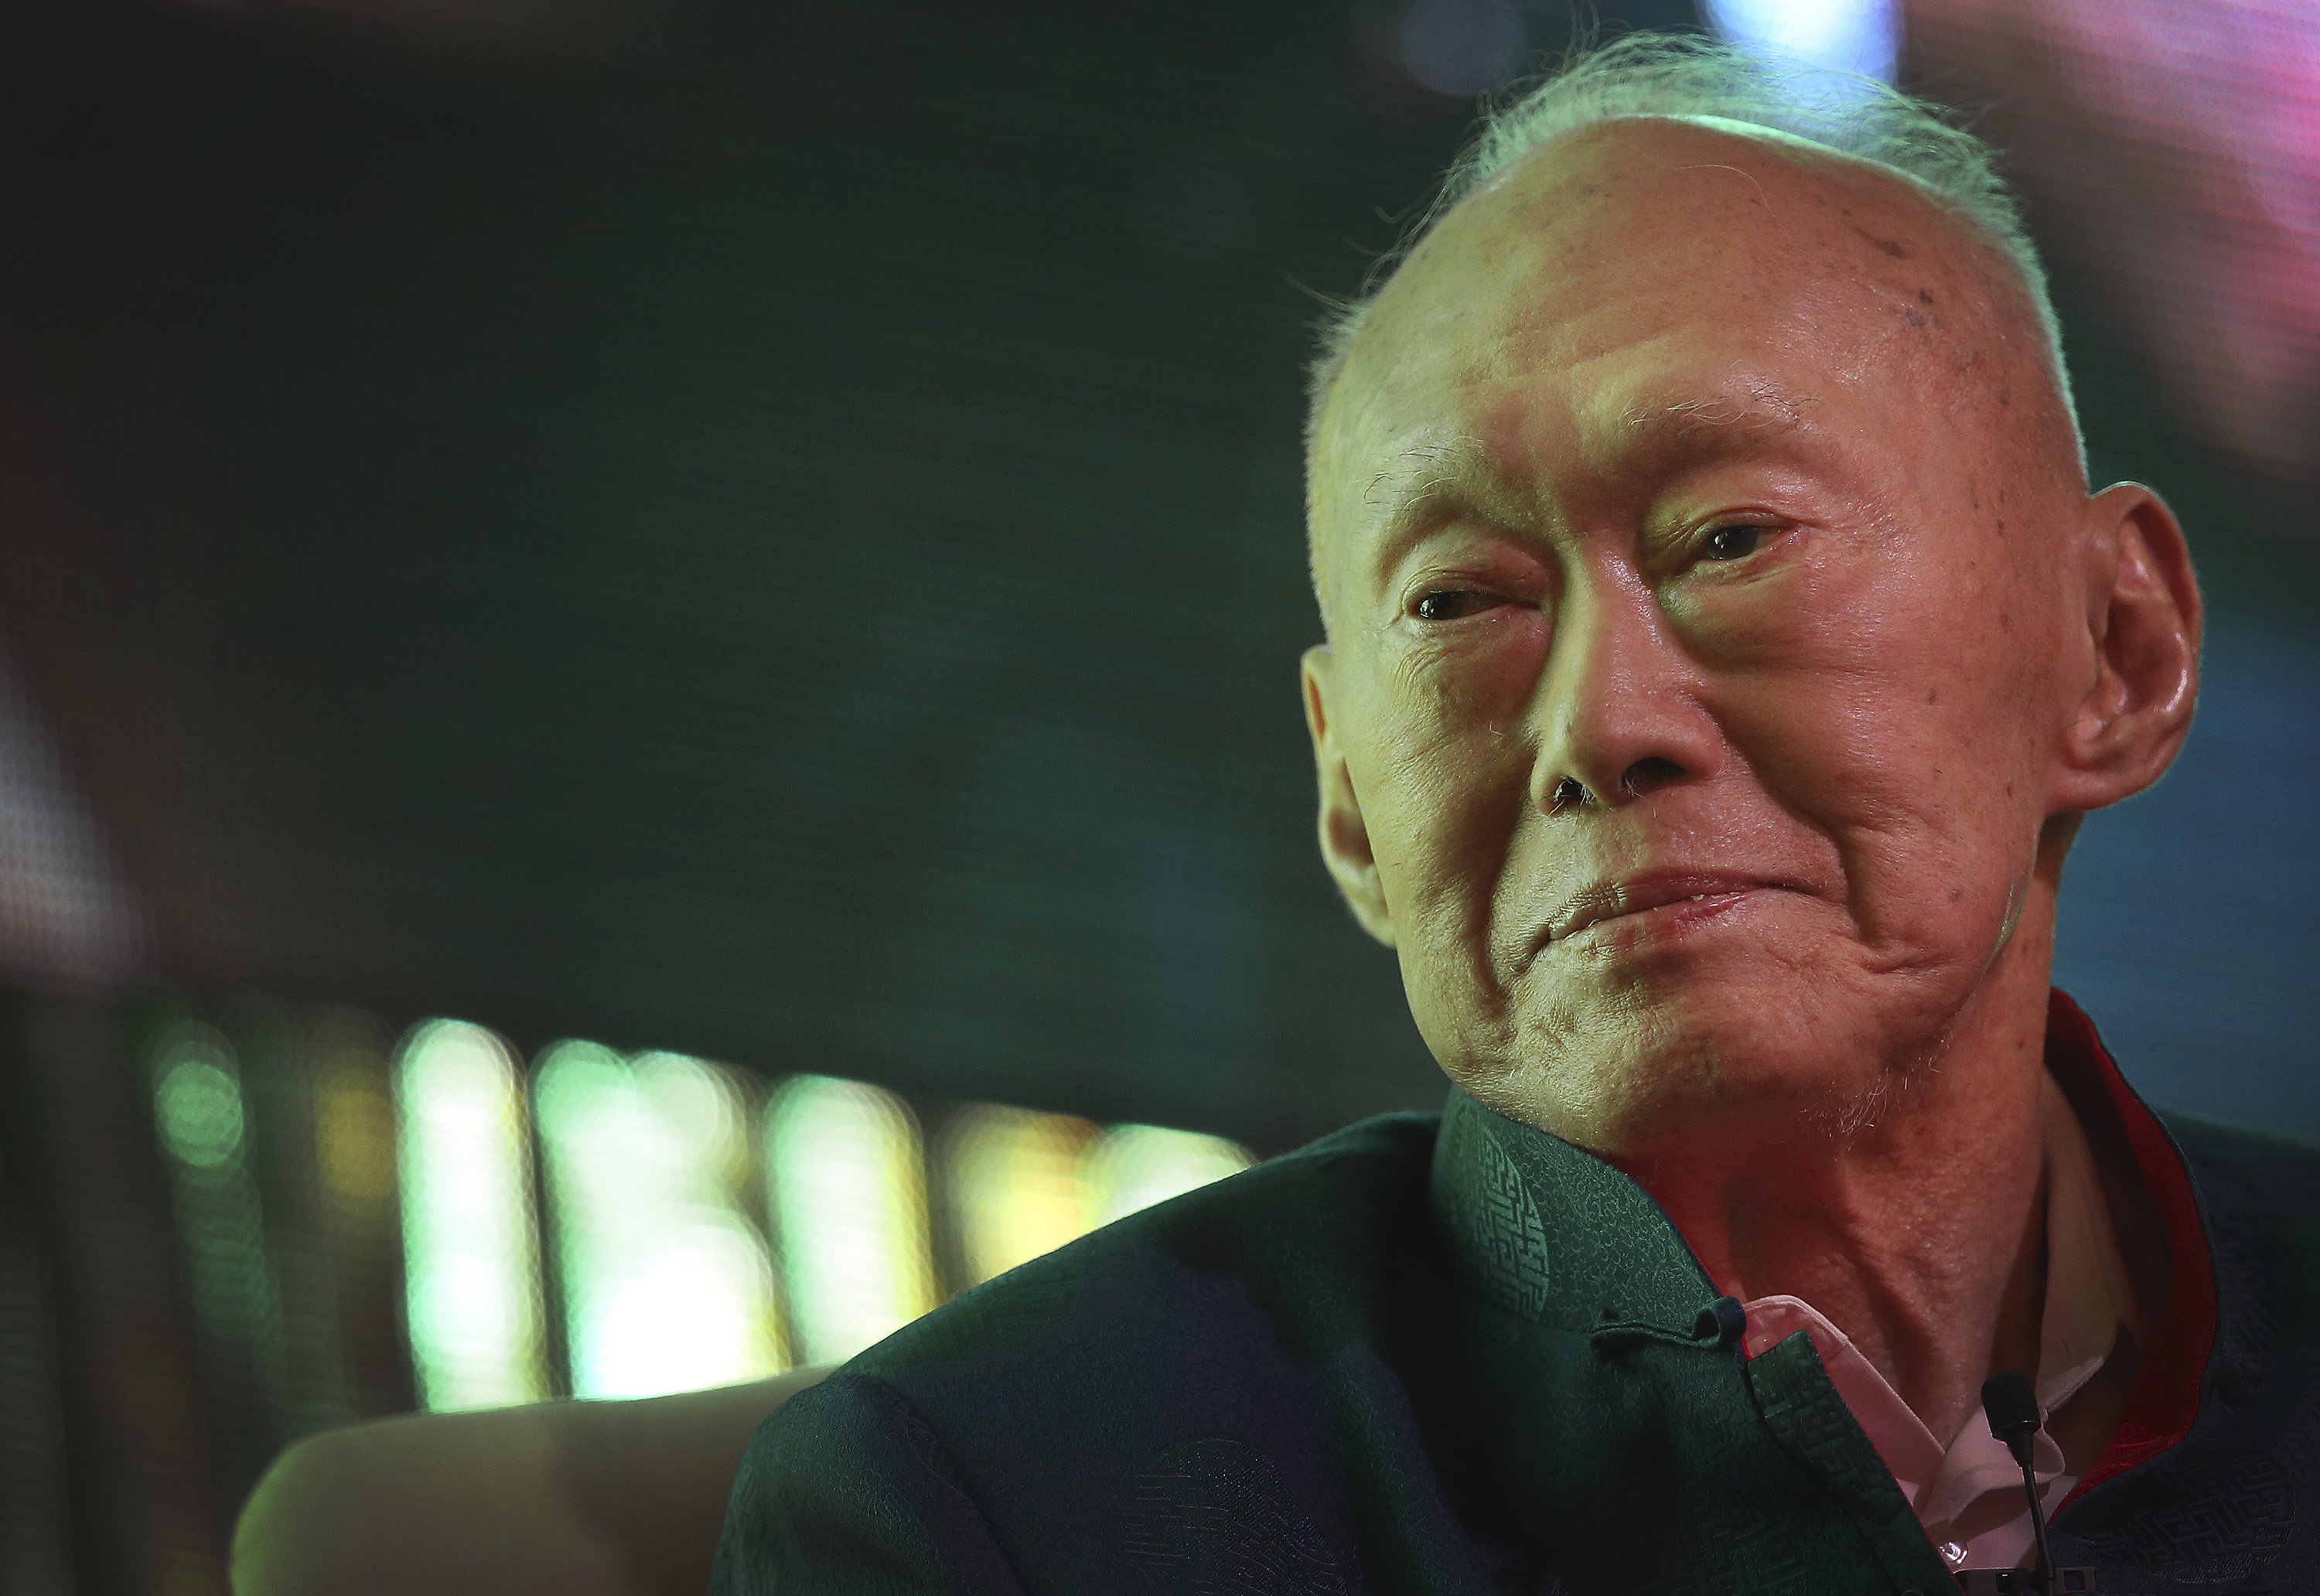 Singapore's former Prime Minister Lee Kuan Yew on March 20, 2013, in Singapore